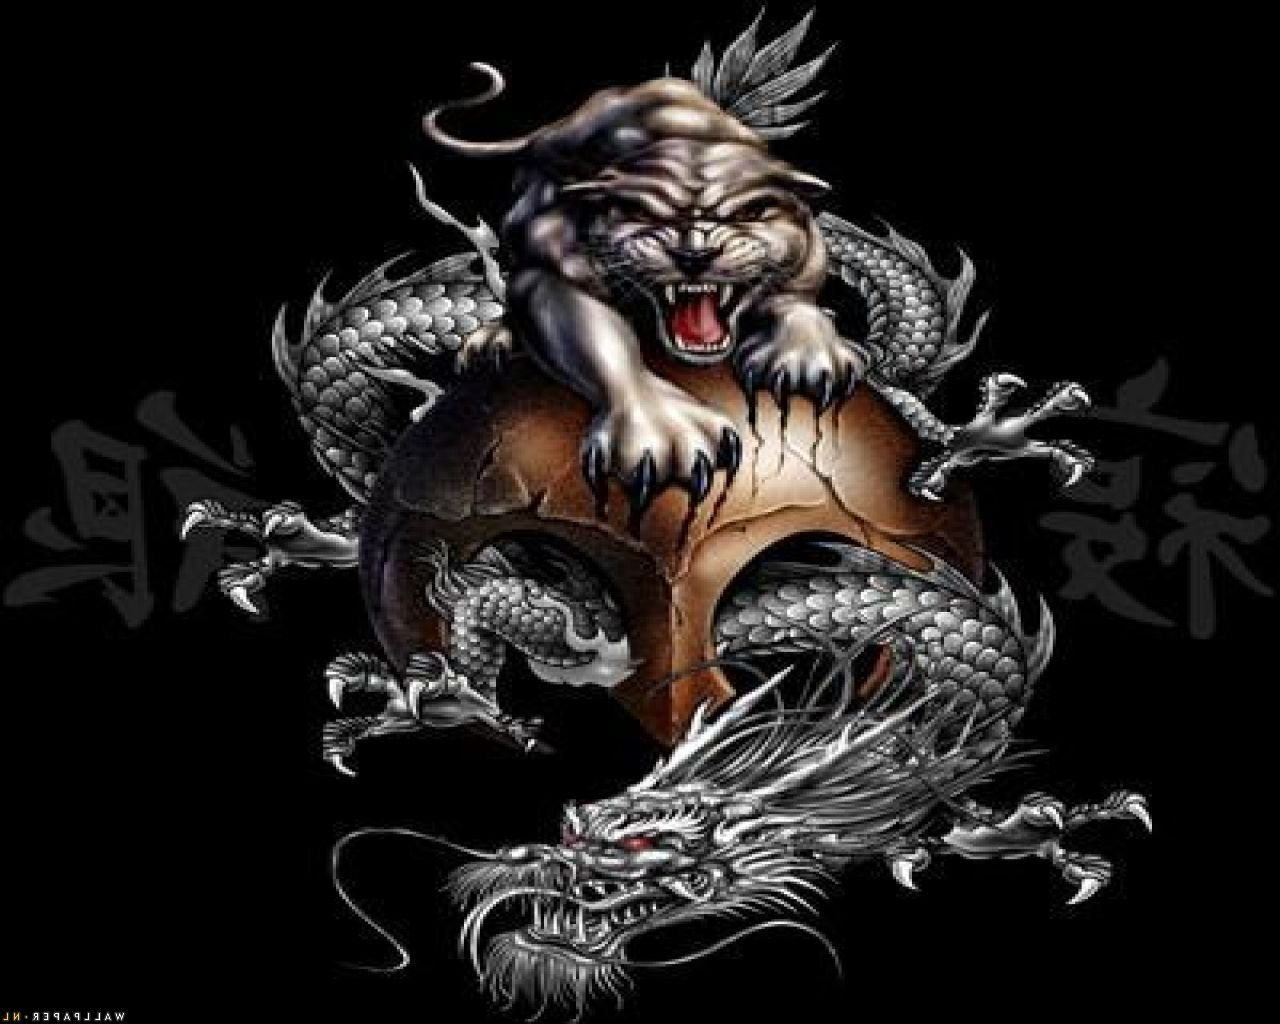 Tiger and Dragon Wallpapers - Top Free Tiger and Dragon